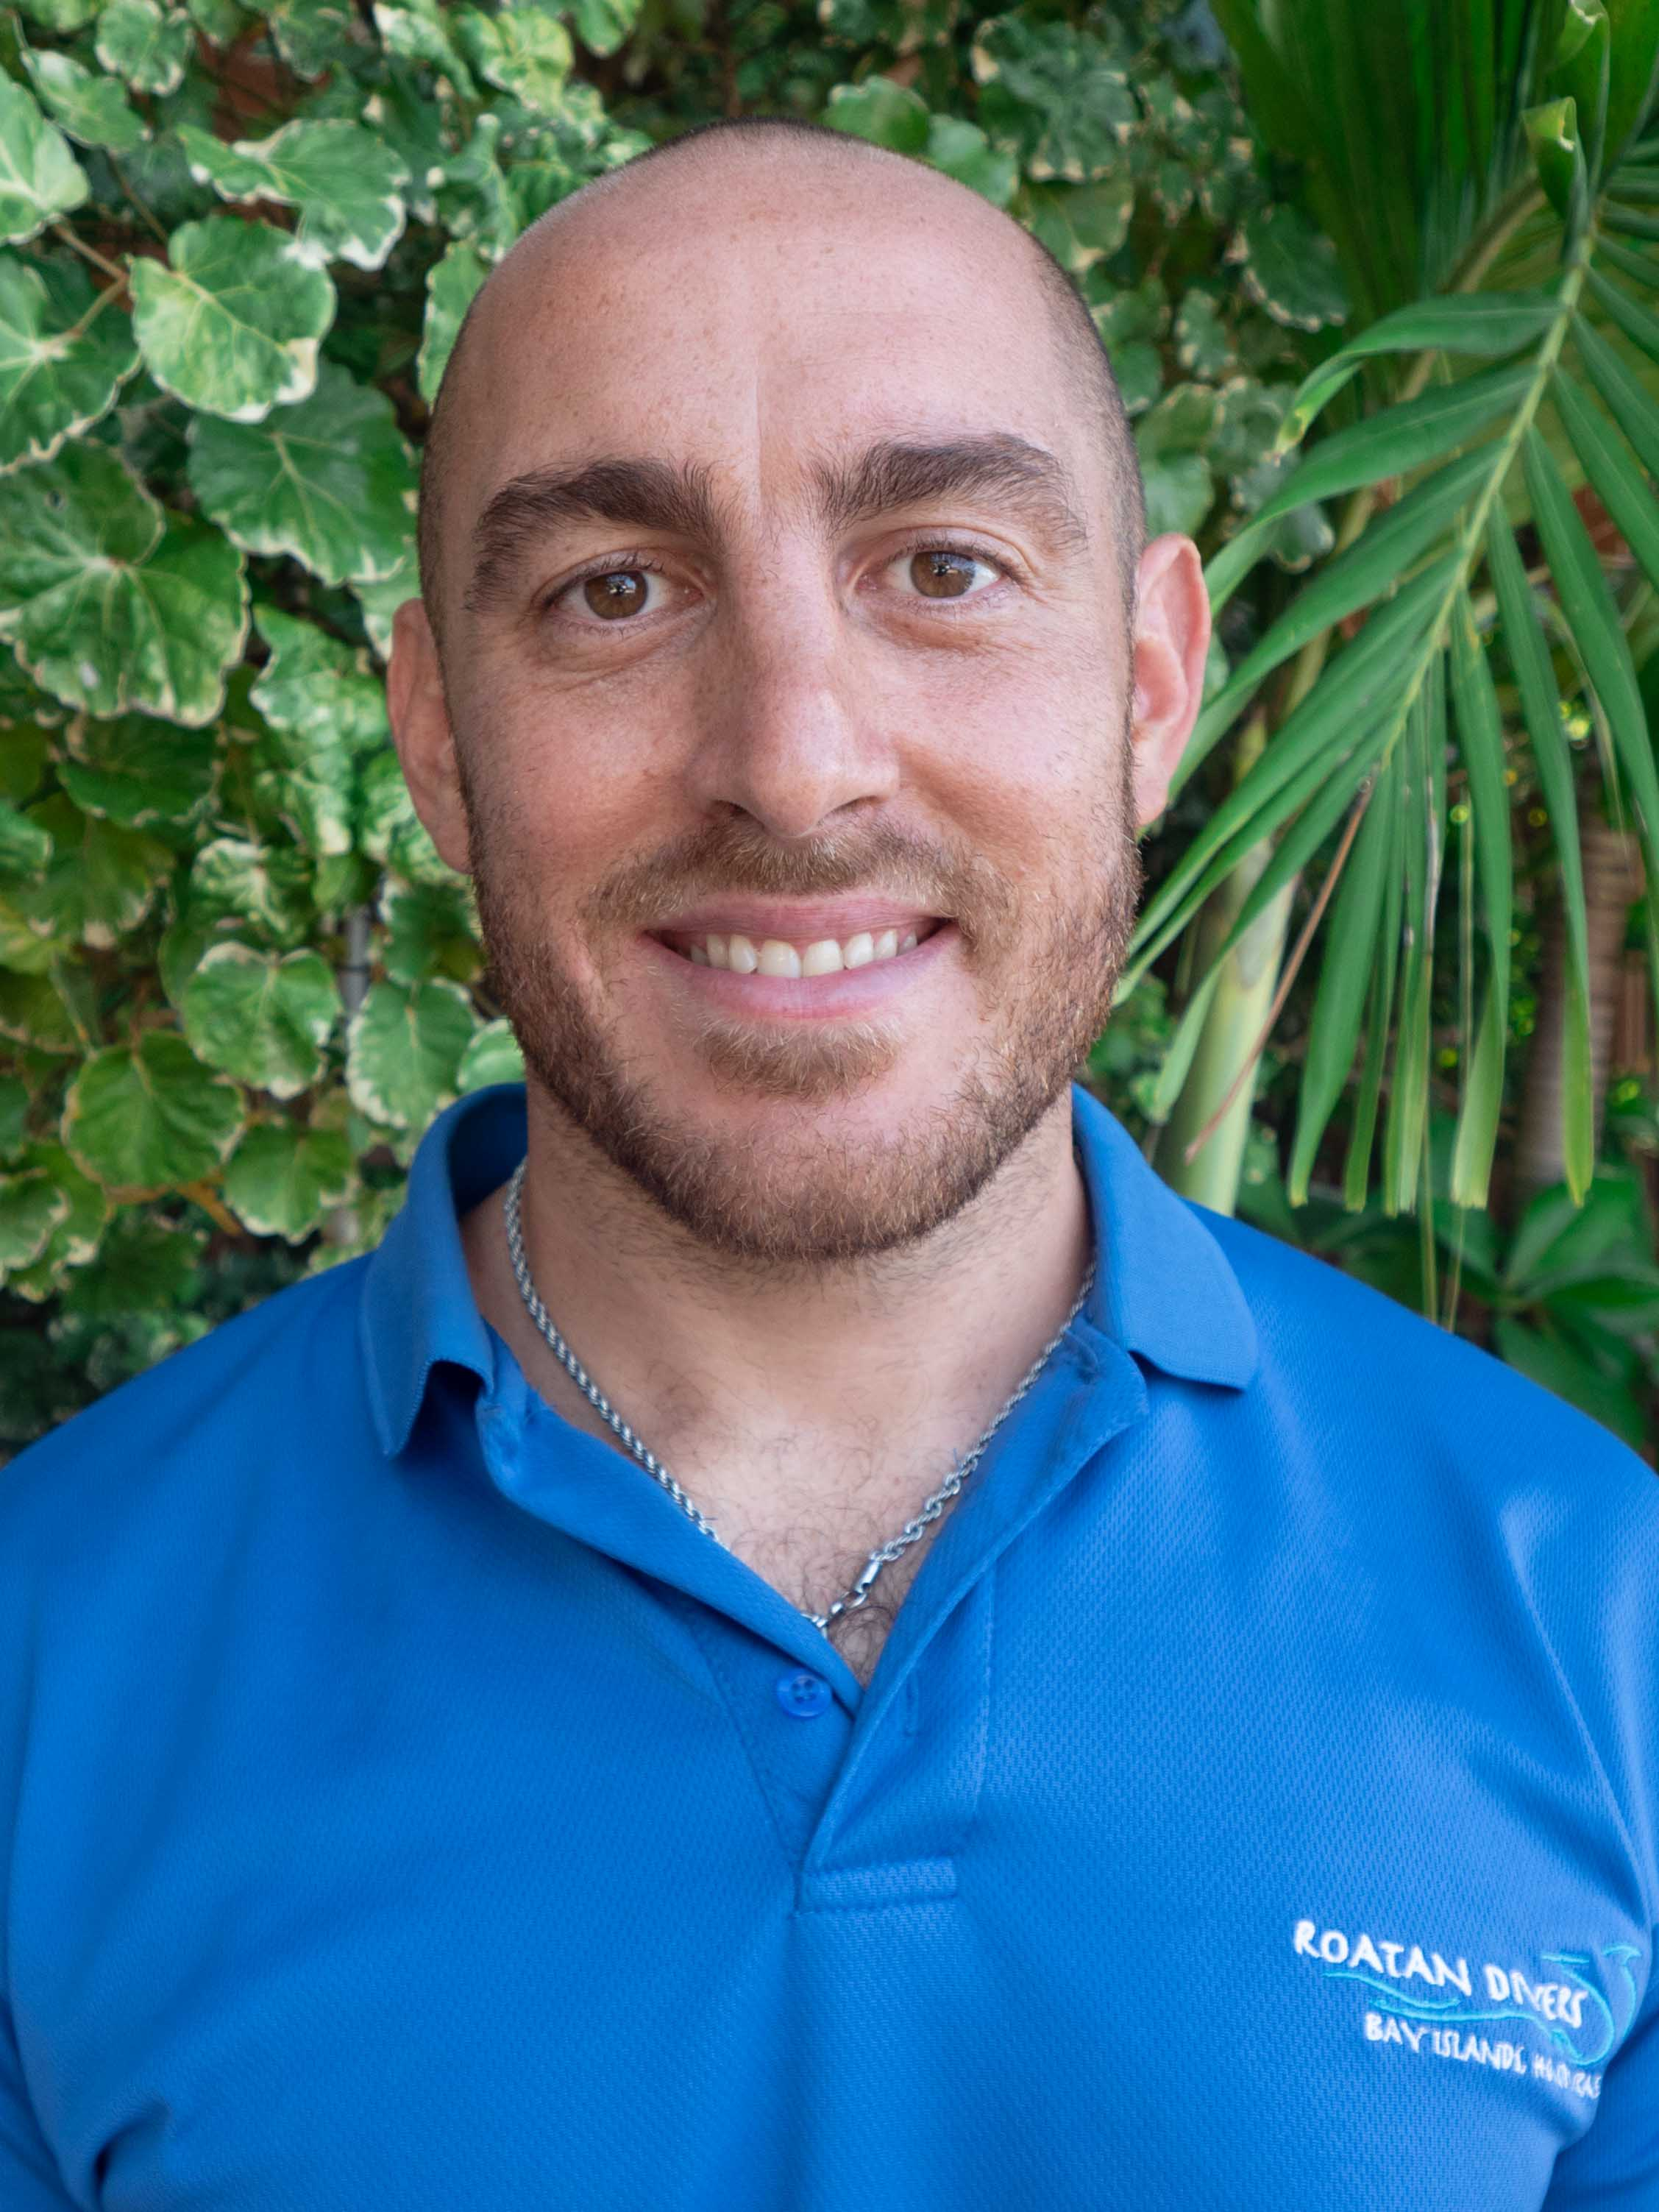 MARTIN - PADI Open Water Scuba Instructor  From: Buenos Aires, Argentina Speaks: Spanish, English Started diving in: